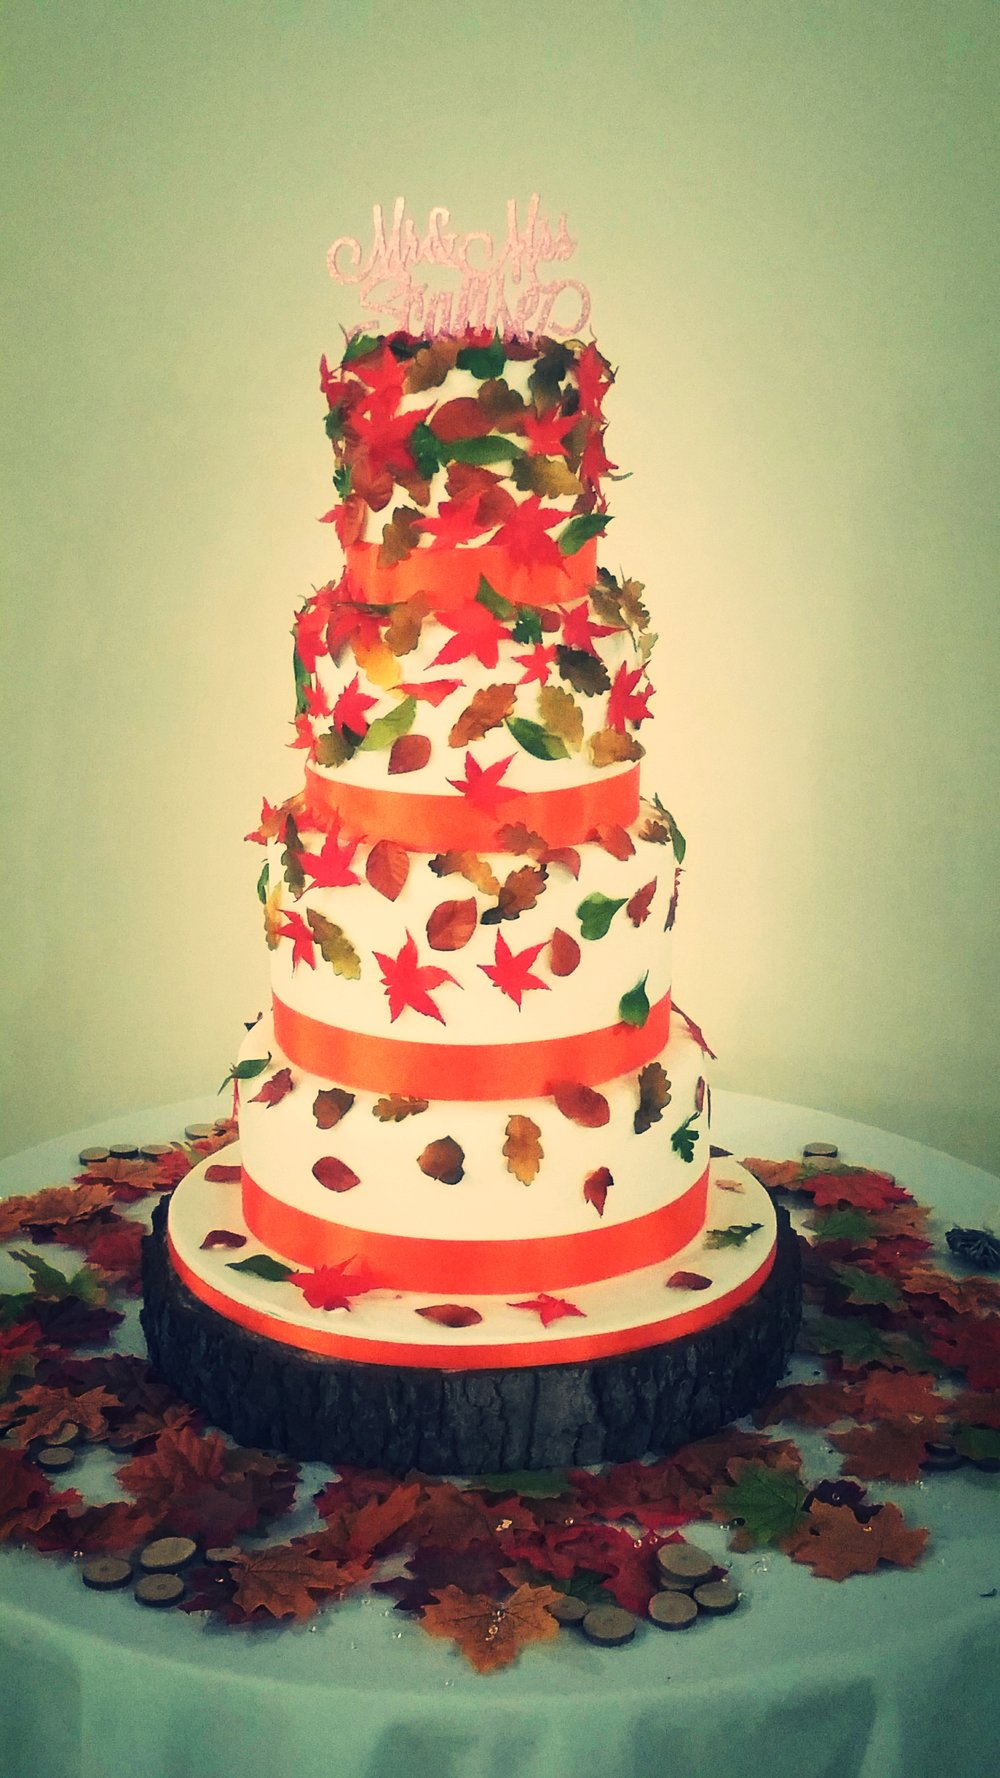 Autumn cascade - Holly and Sal's delicious wedding cake, with falling sugar leaves in golds, and greens are perfect for their Autumn wedding